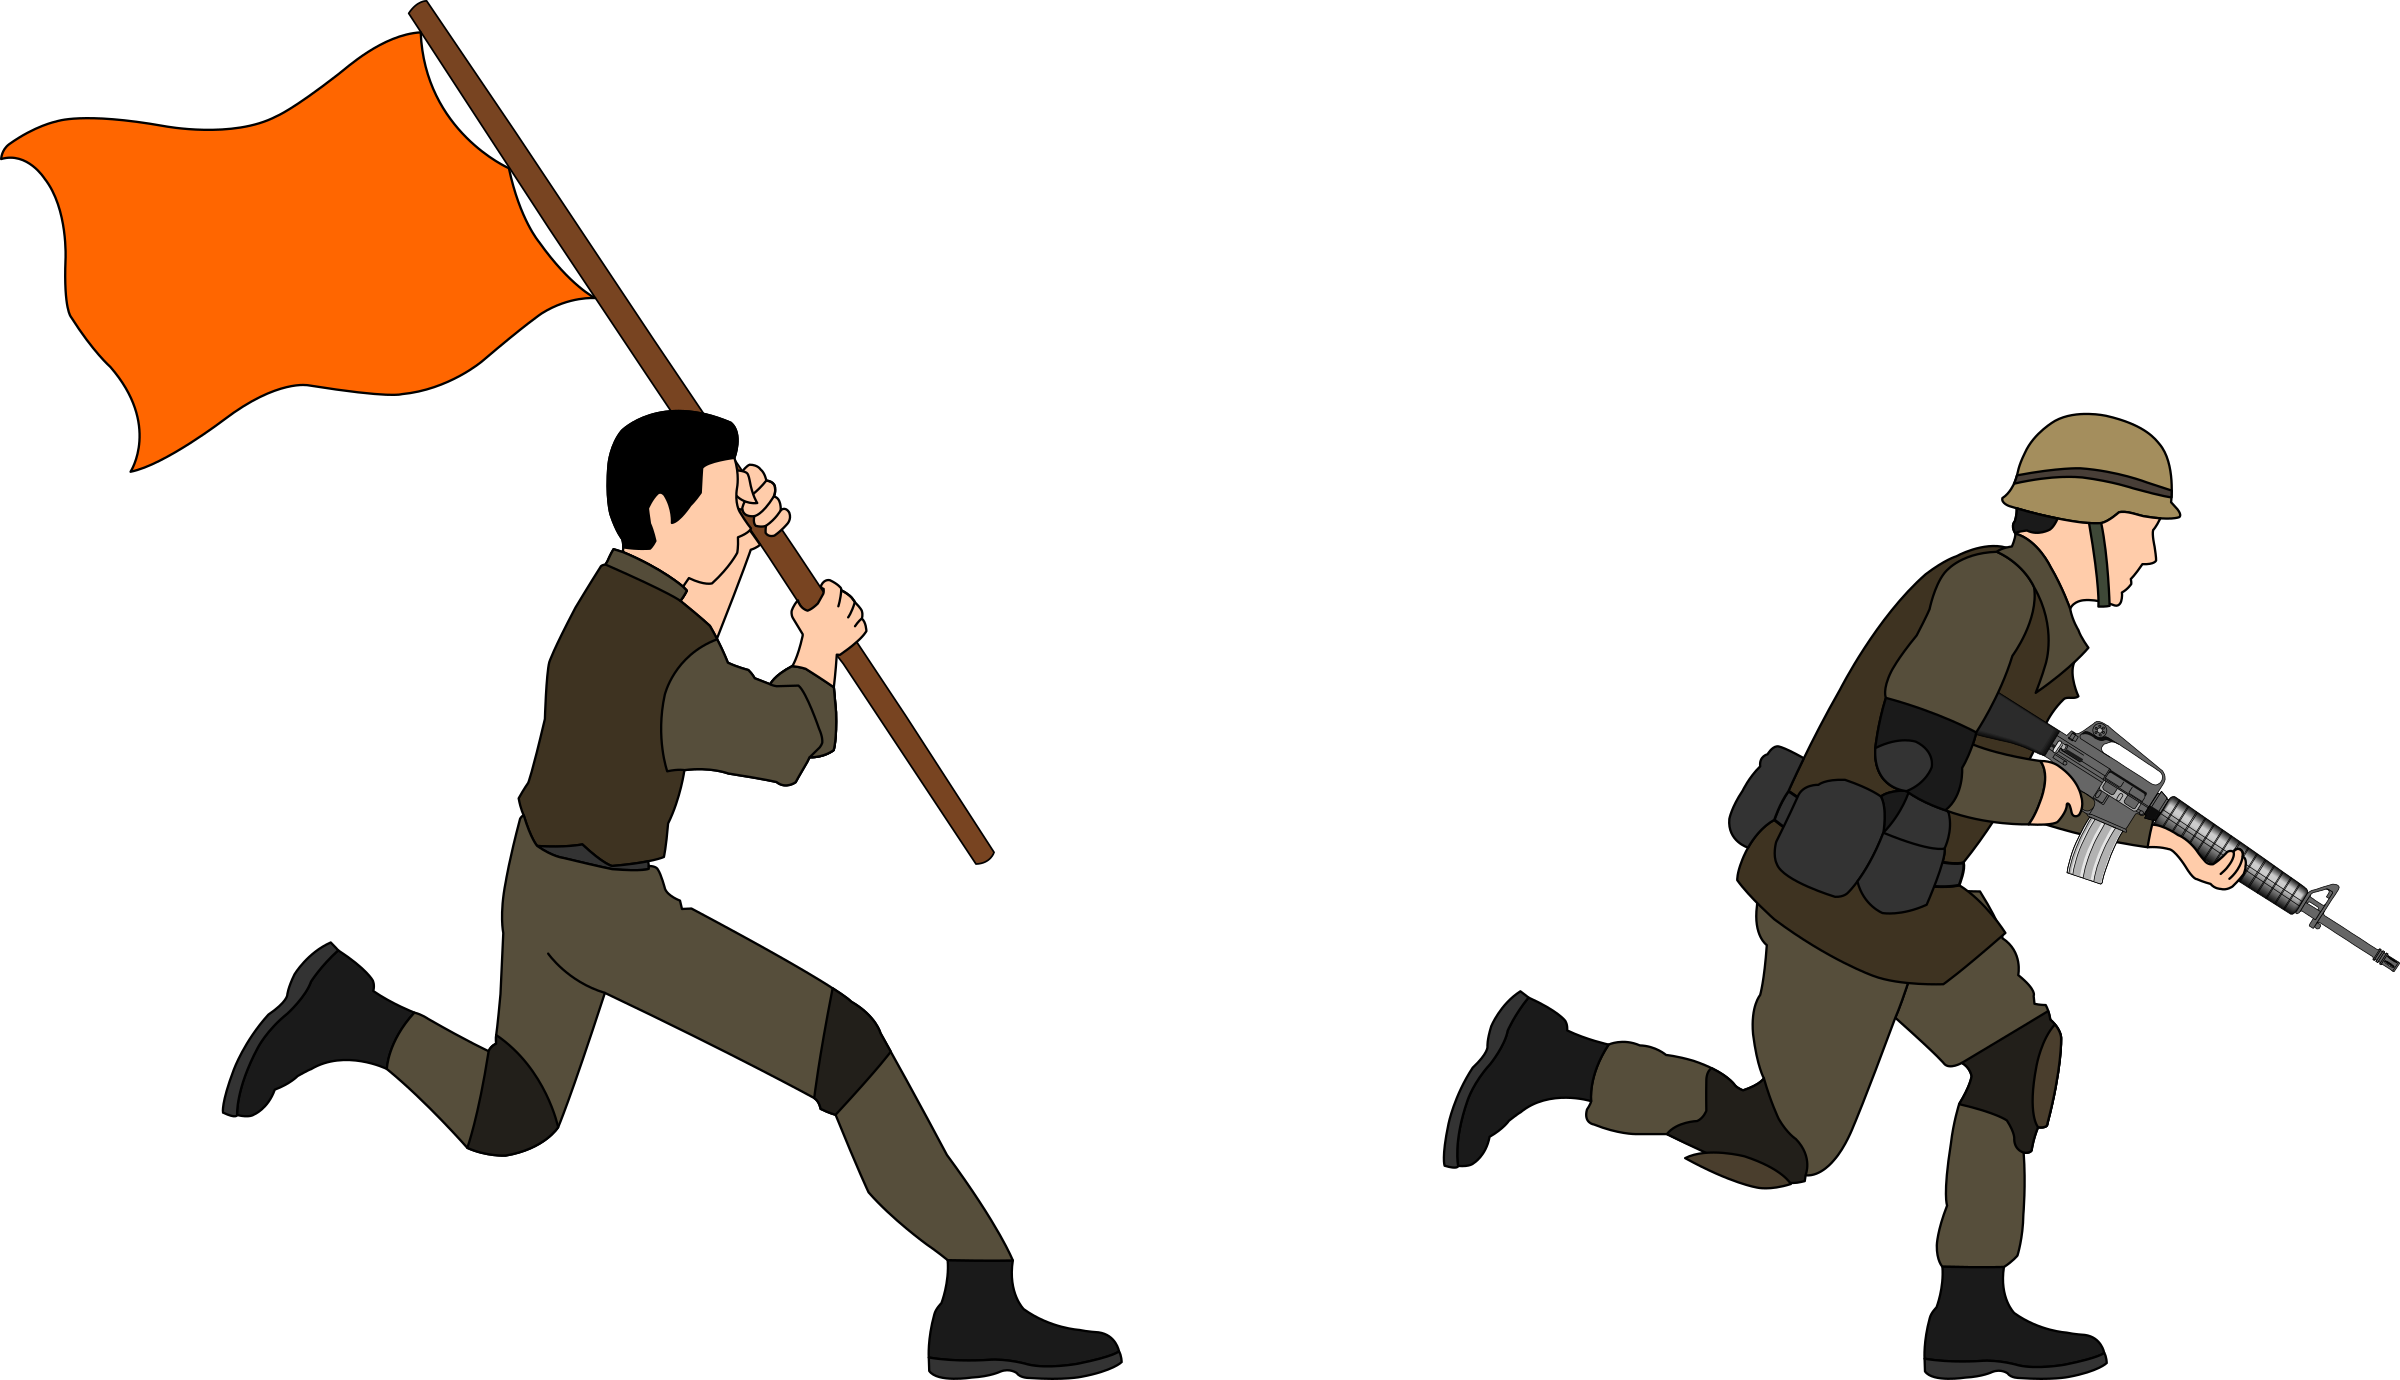 Charging big image png. Soldiers clipart